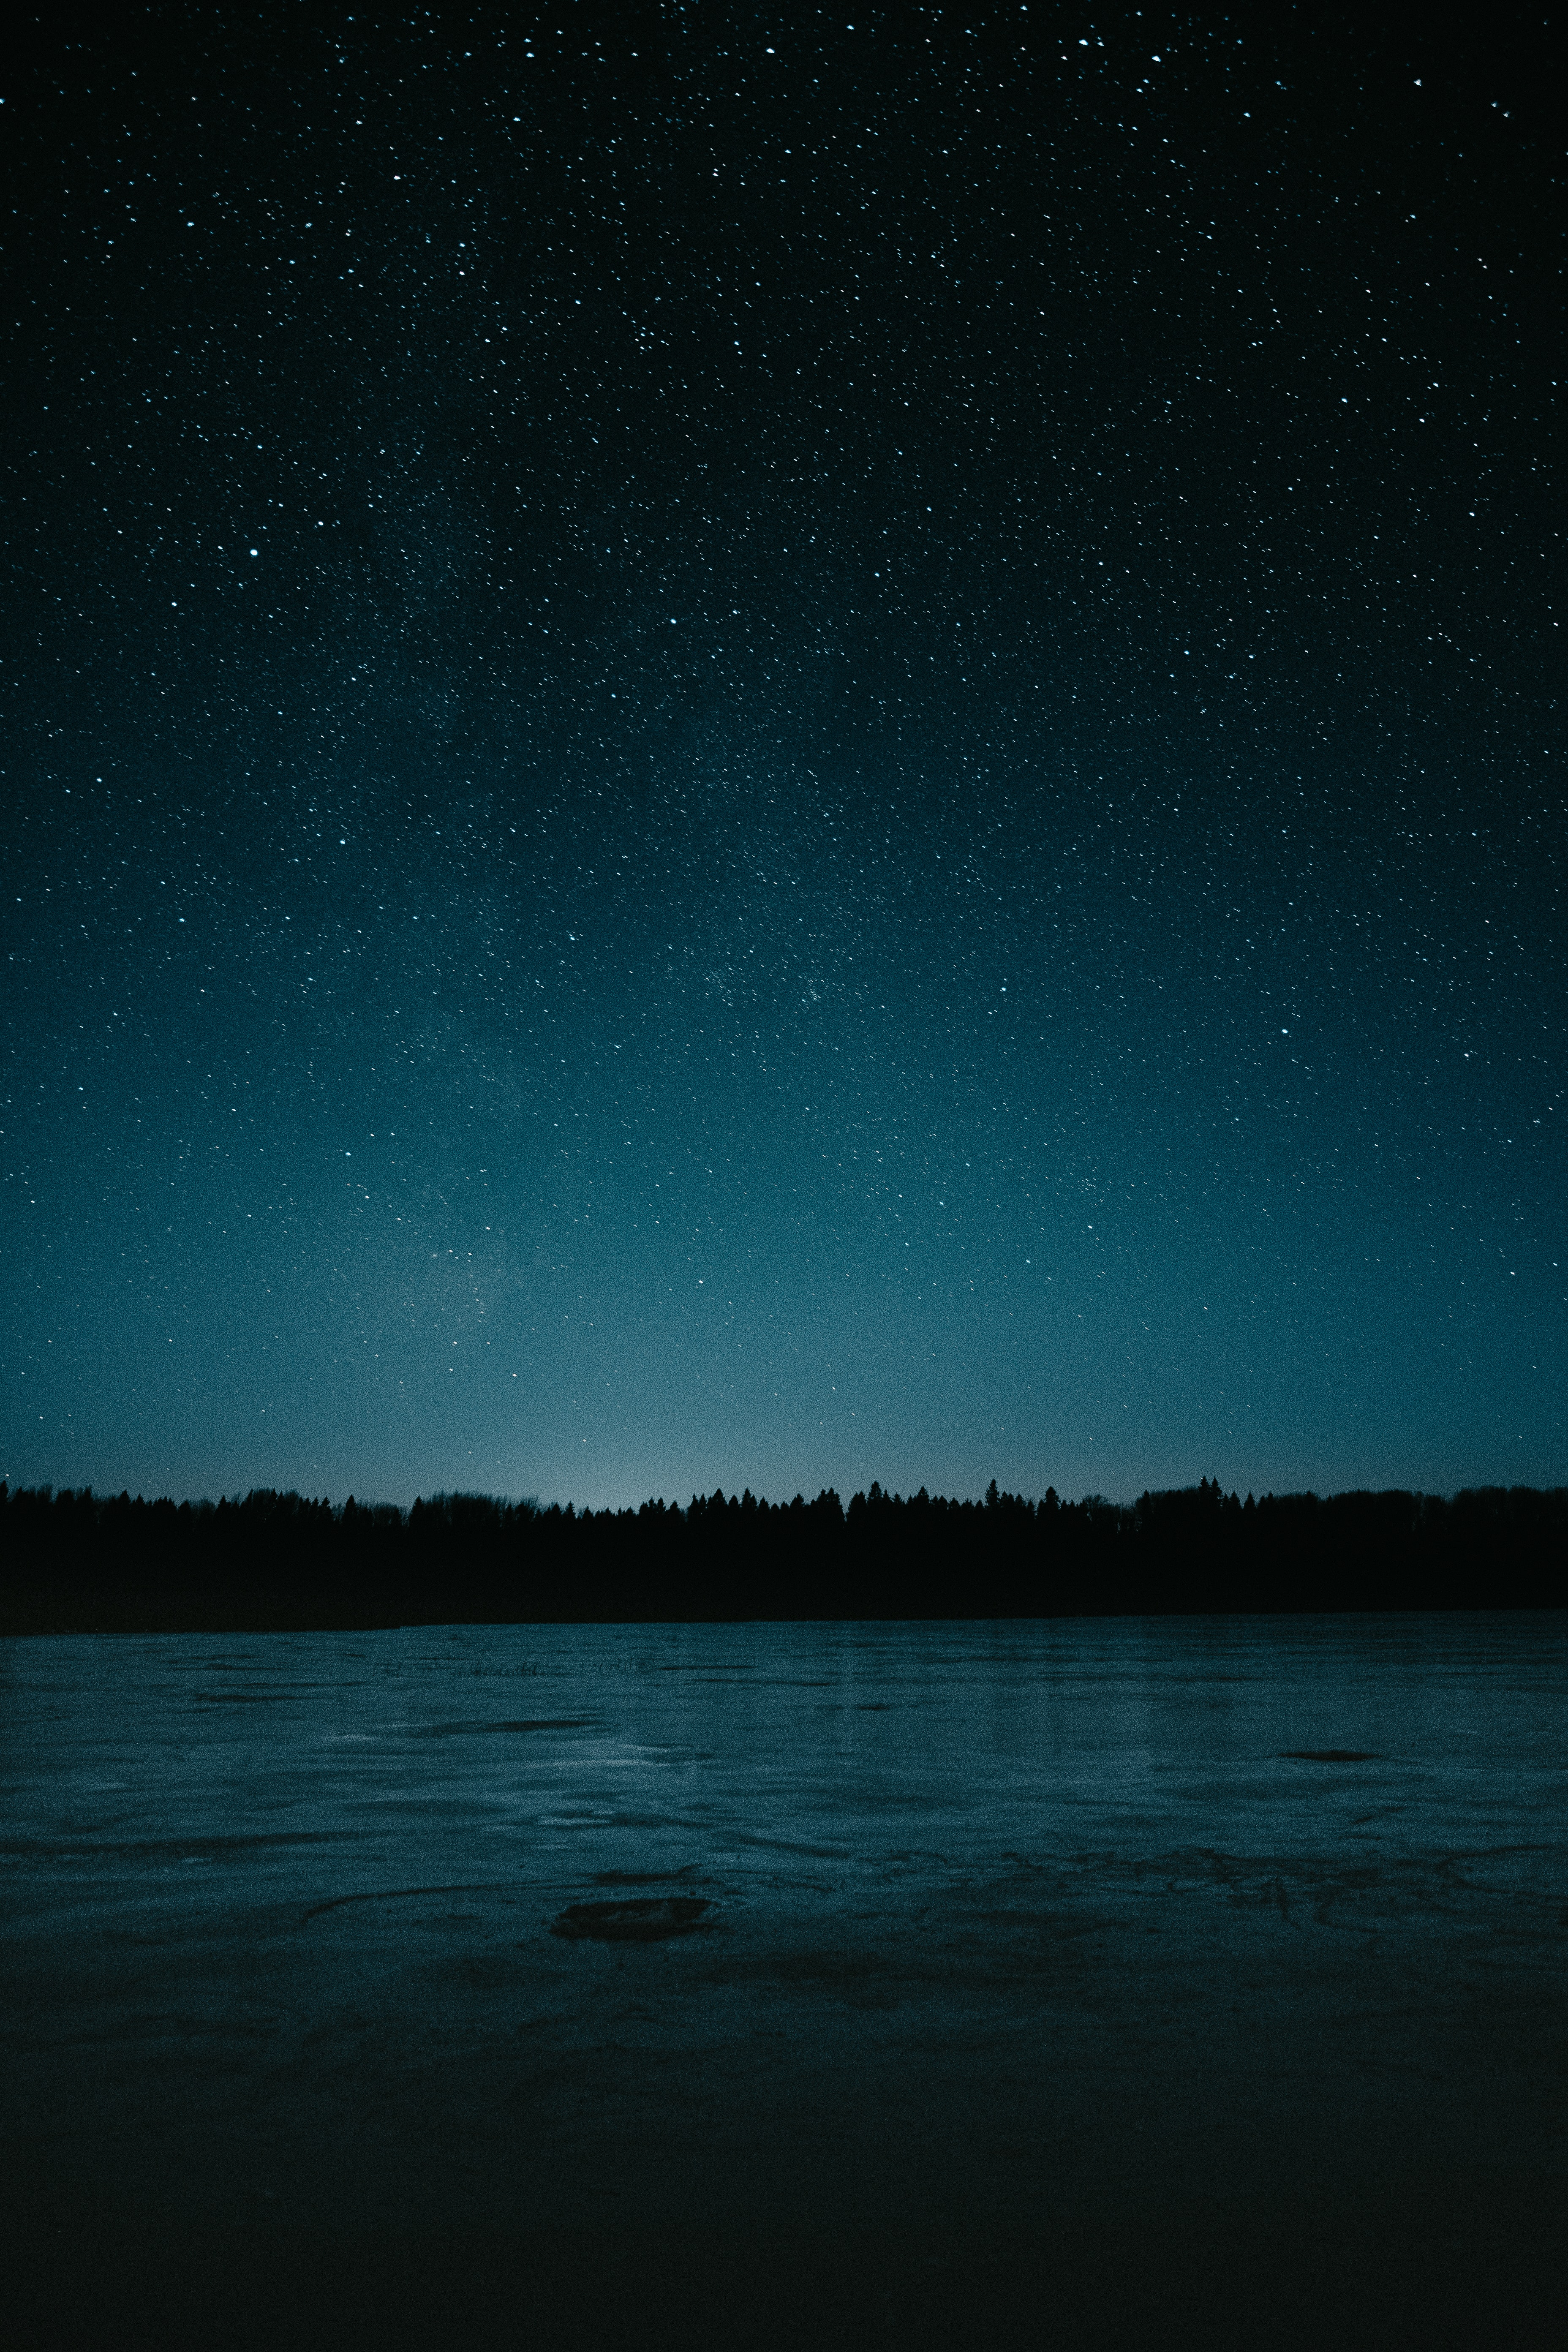 85359 download wallpaper Dark, Night, Lake, Starry Sky screensavers and pictures for free